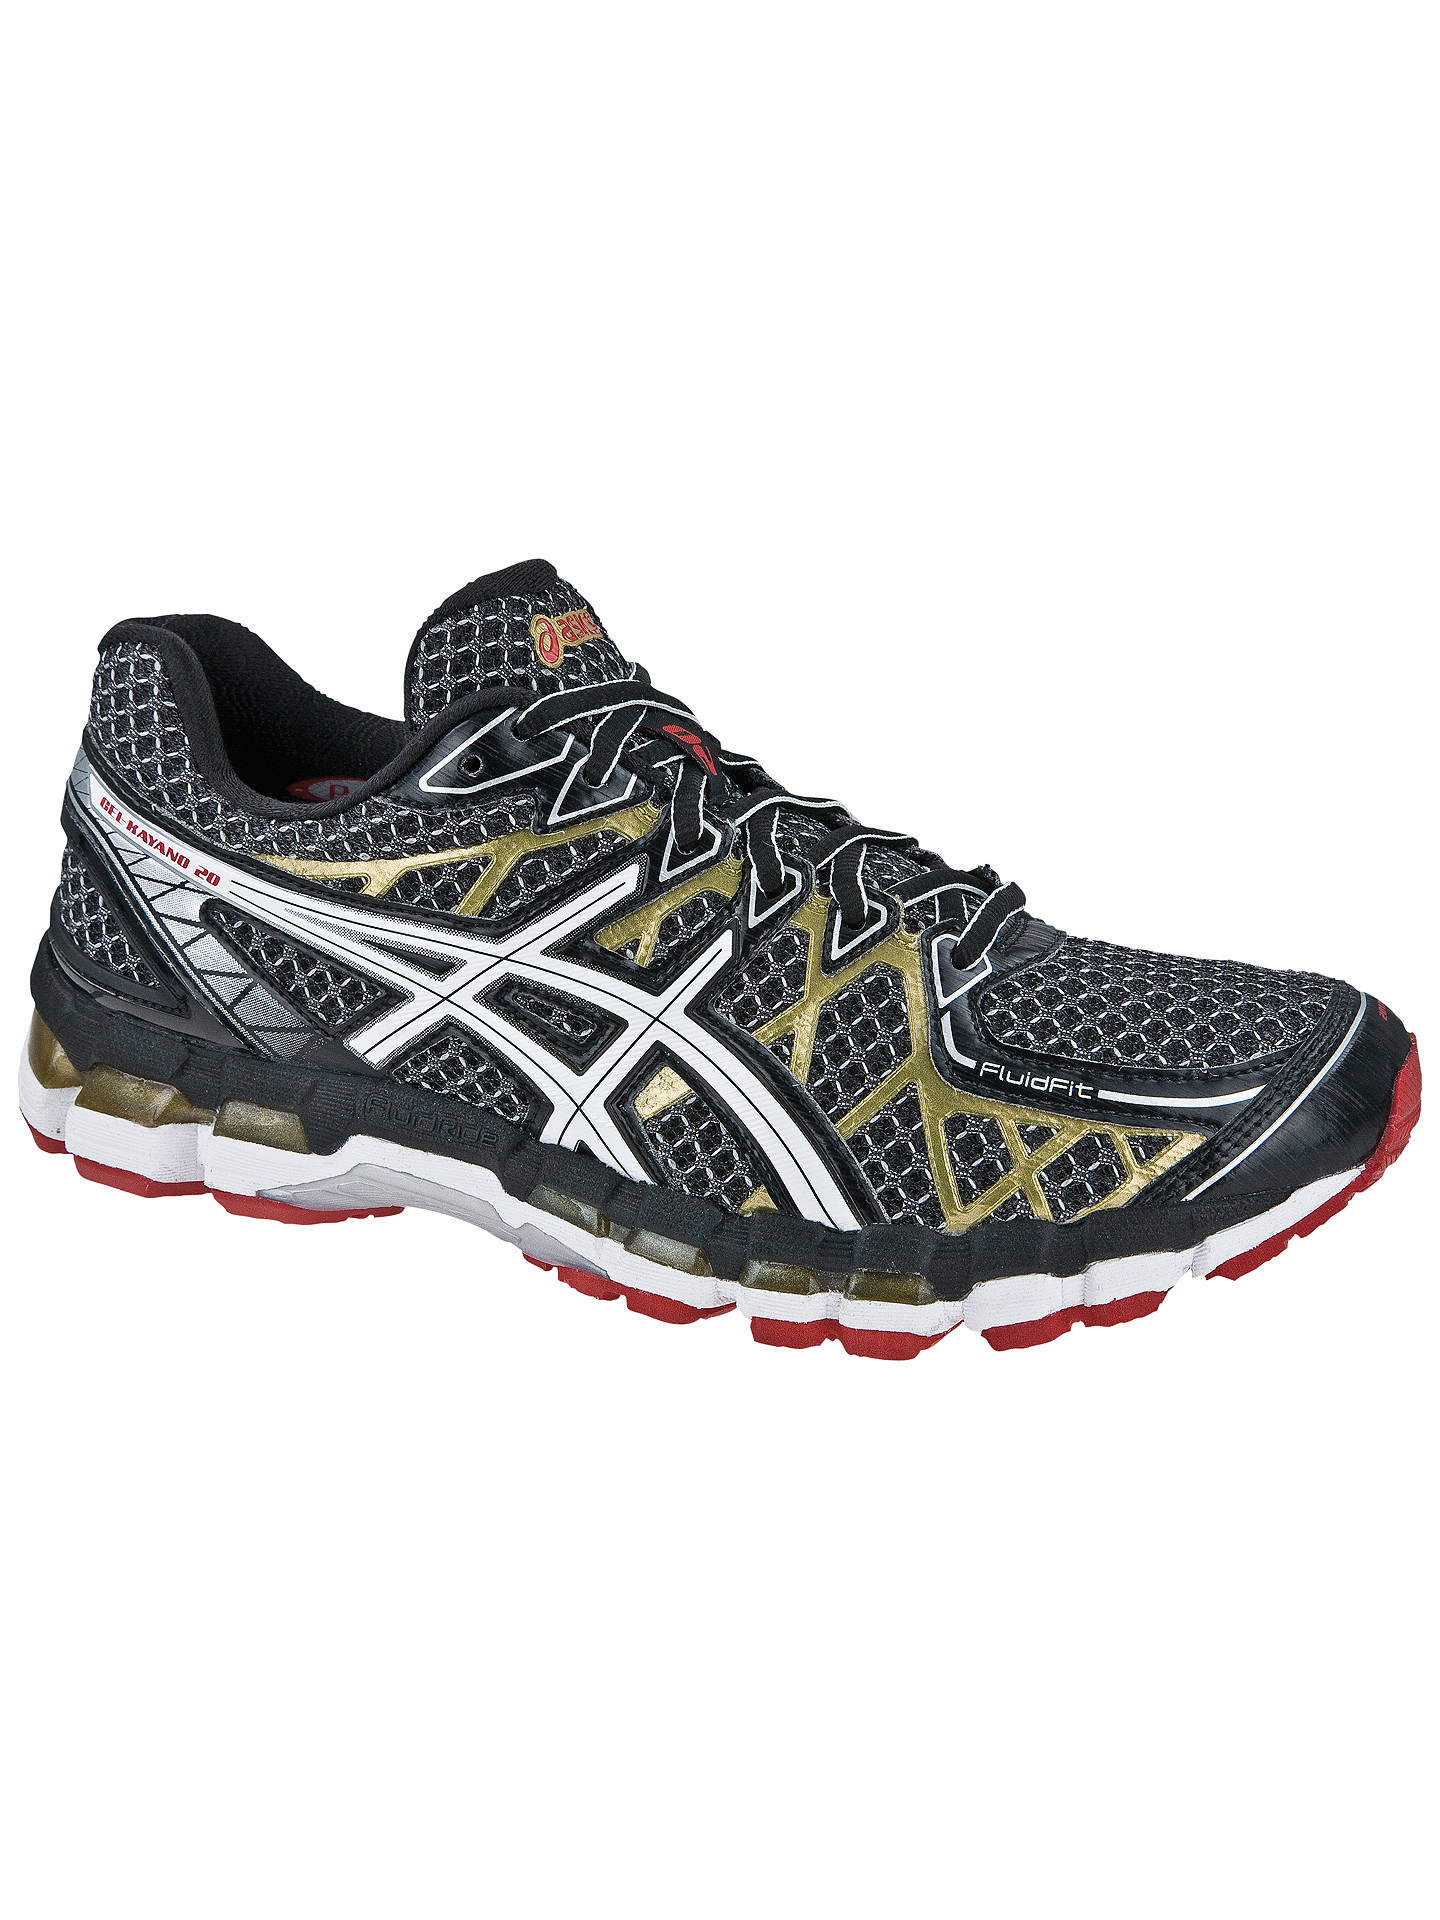 separation shoes a56f6 c0e31 Buy Asics GEL-Kayano 20 Men s Running Shoes, Black White Gold, ...